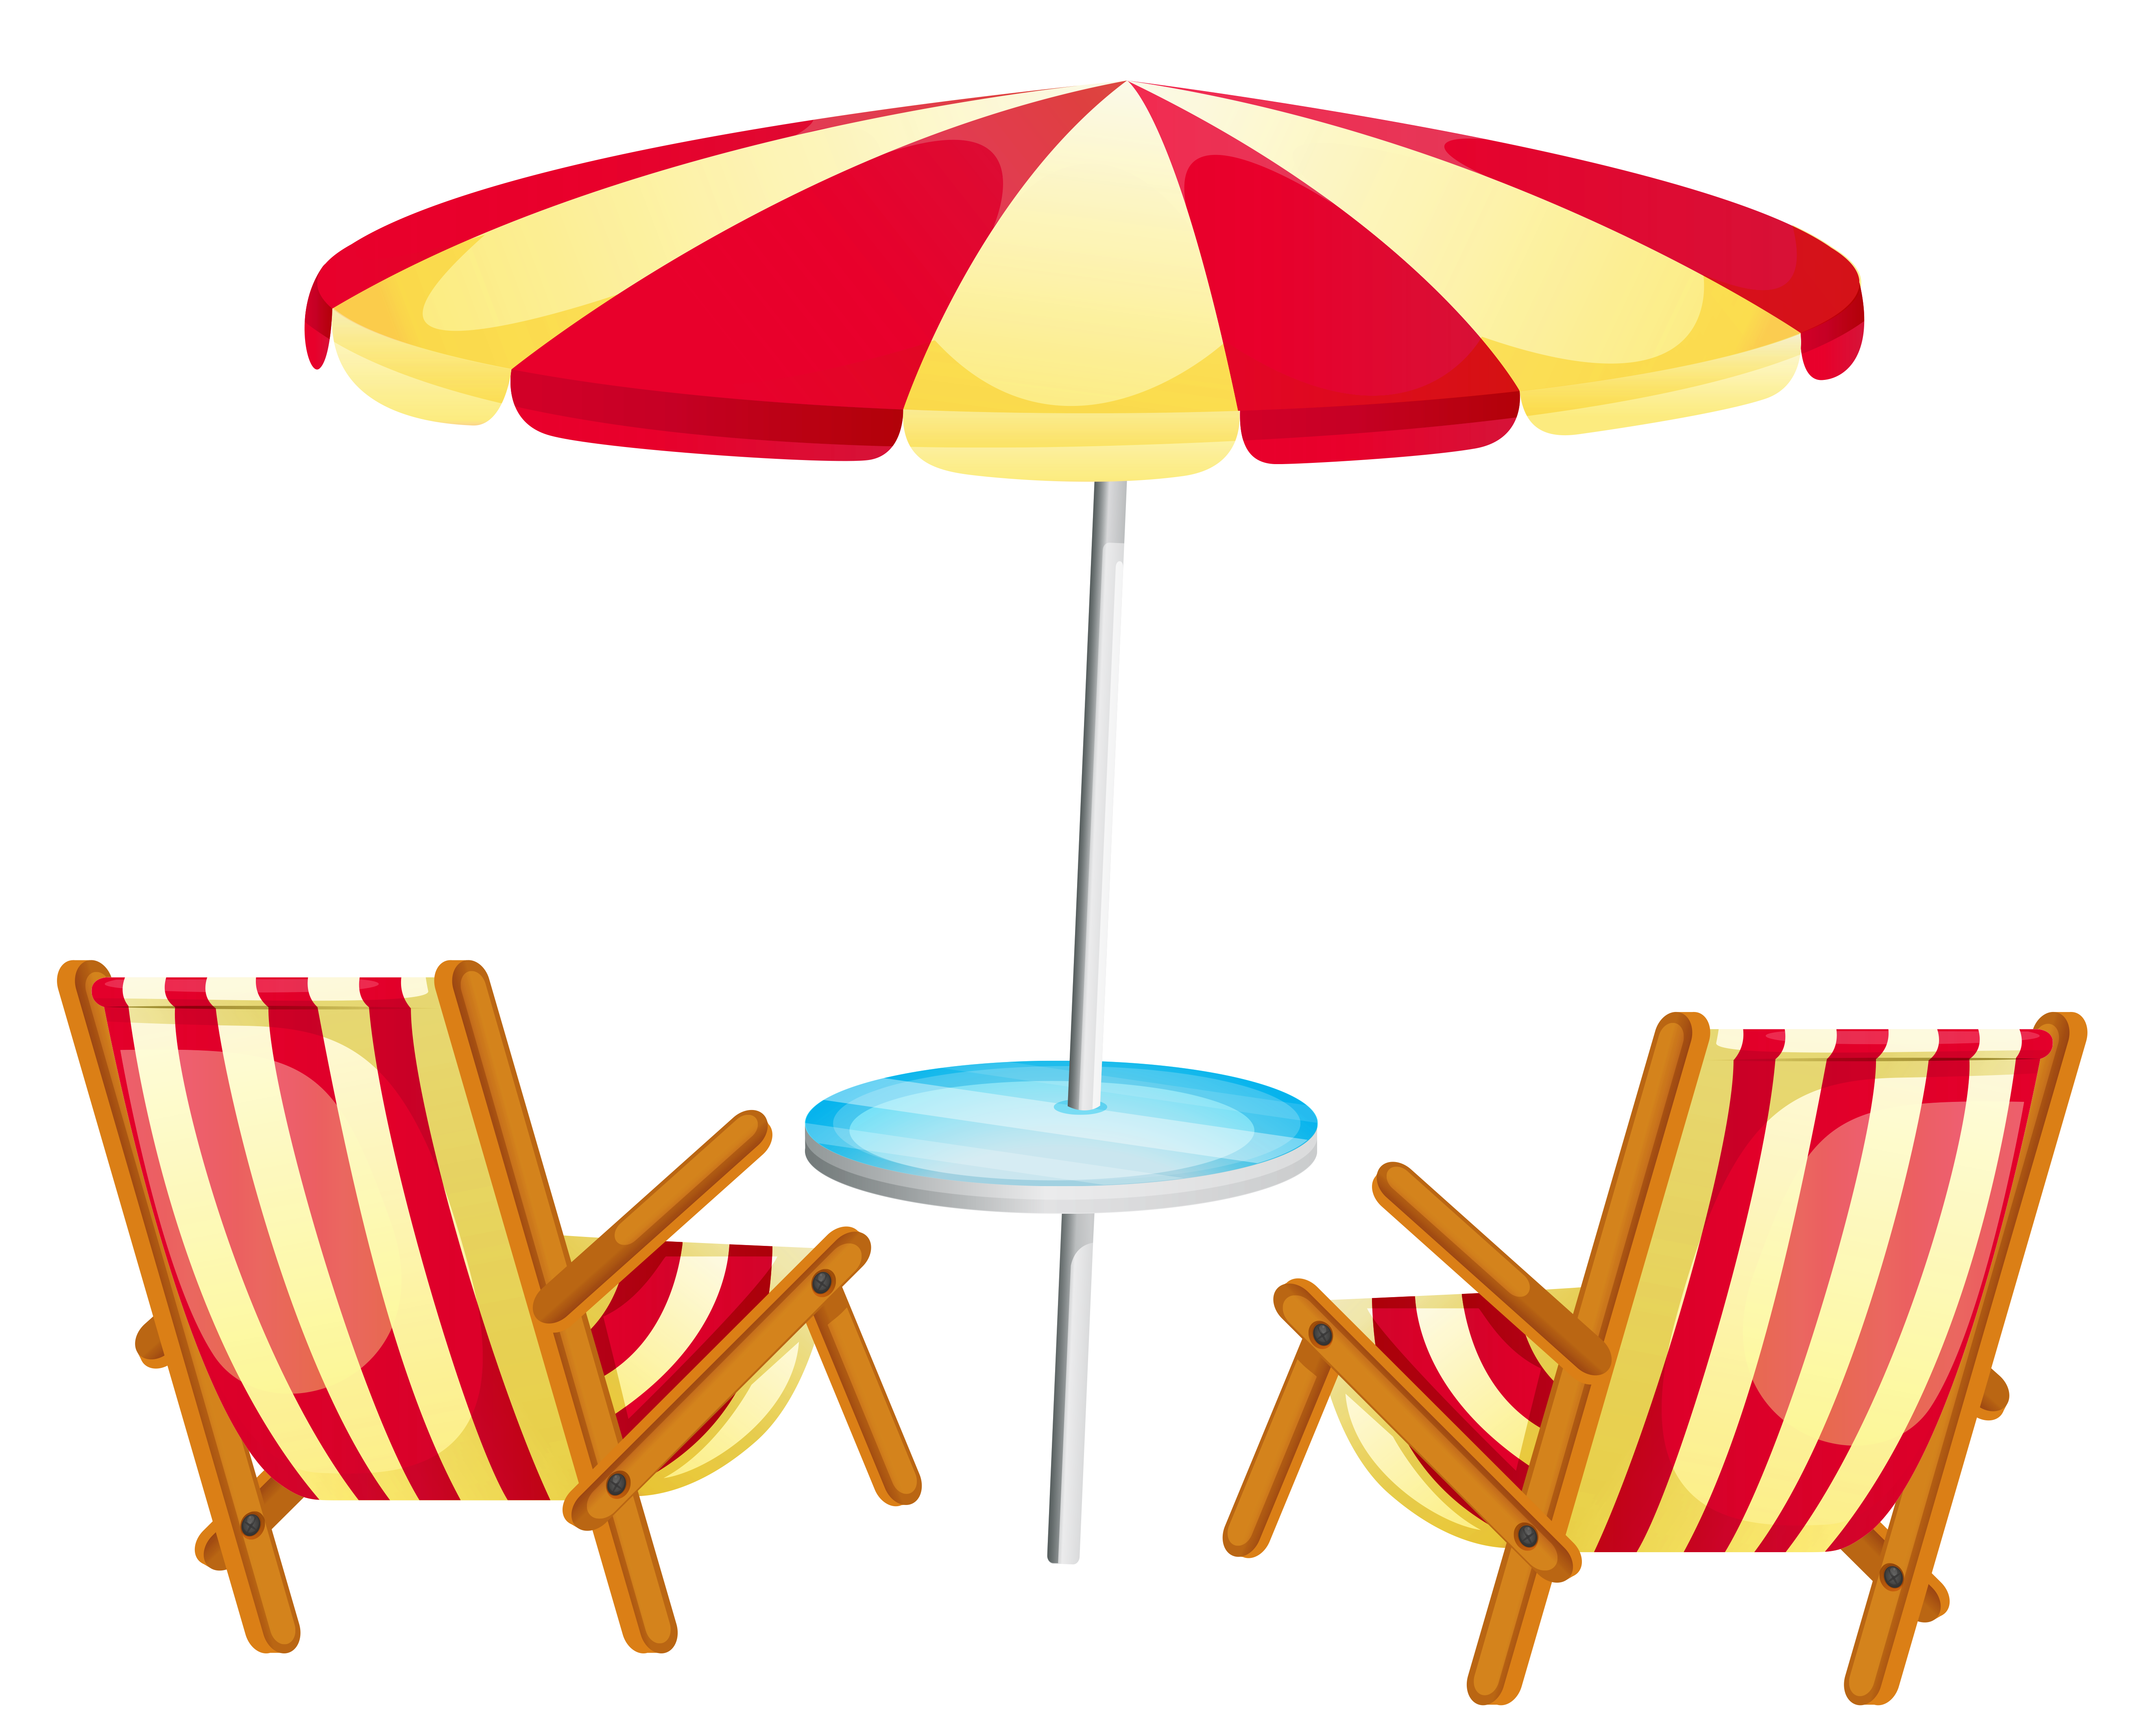 banner royalty free stock Umbrella with chairs png. Beach transparent clipart